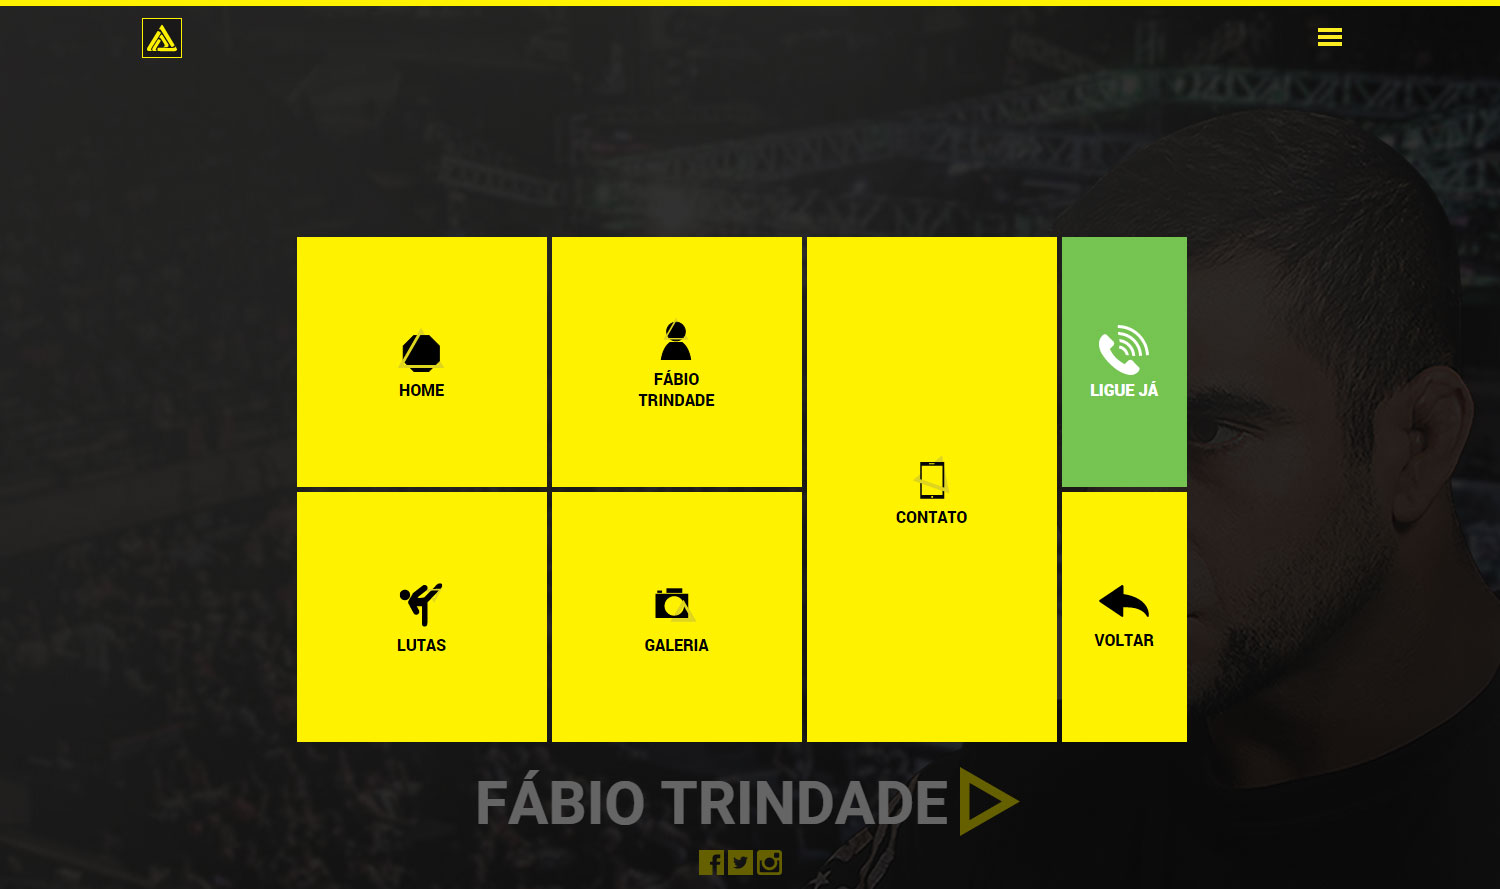 Fábio Trindade - Website of the Day